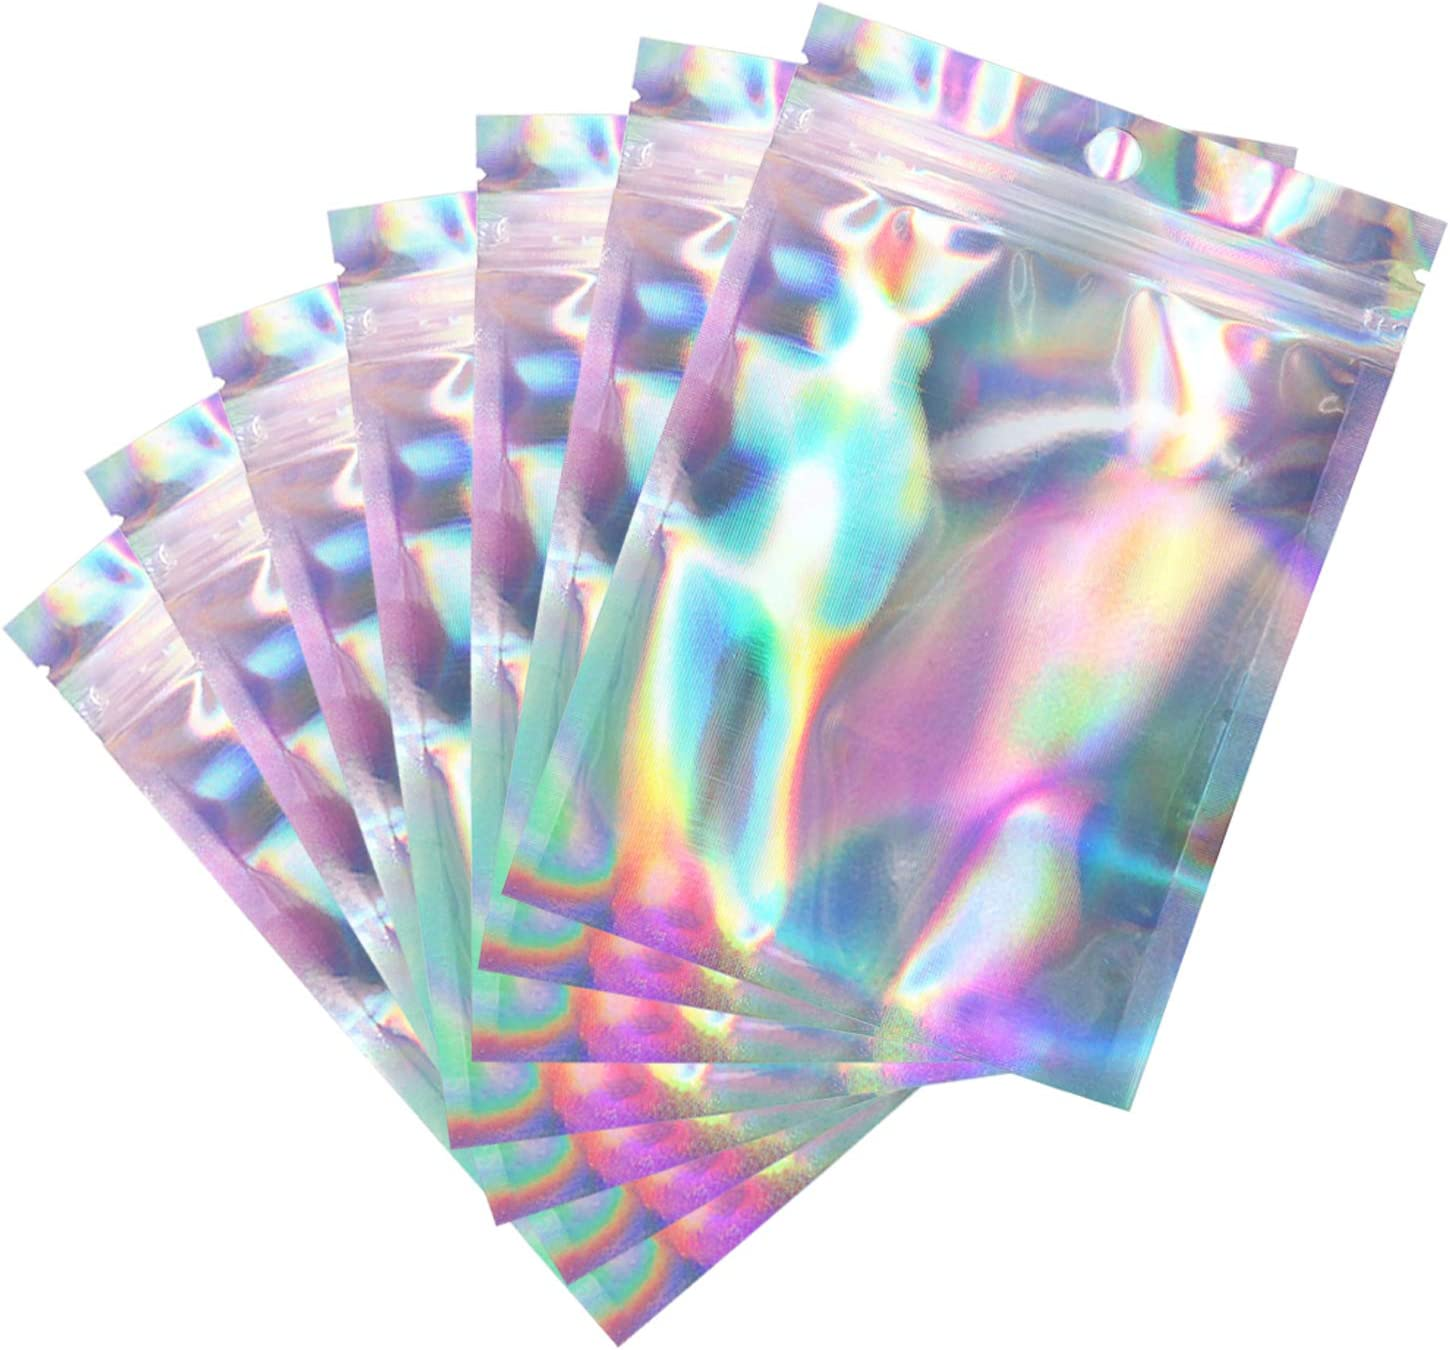 Holographic Foil Pouch Bags, 100PCS 4x6in Resealable Smell Proof Mylar Bags Rainbow Color for Food Storage Candy Wrap Coffee Bean Jewelry Lip gloss